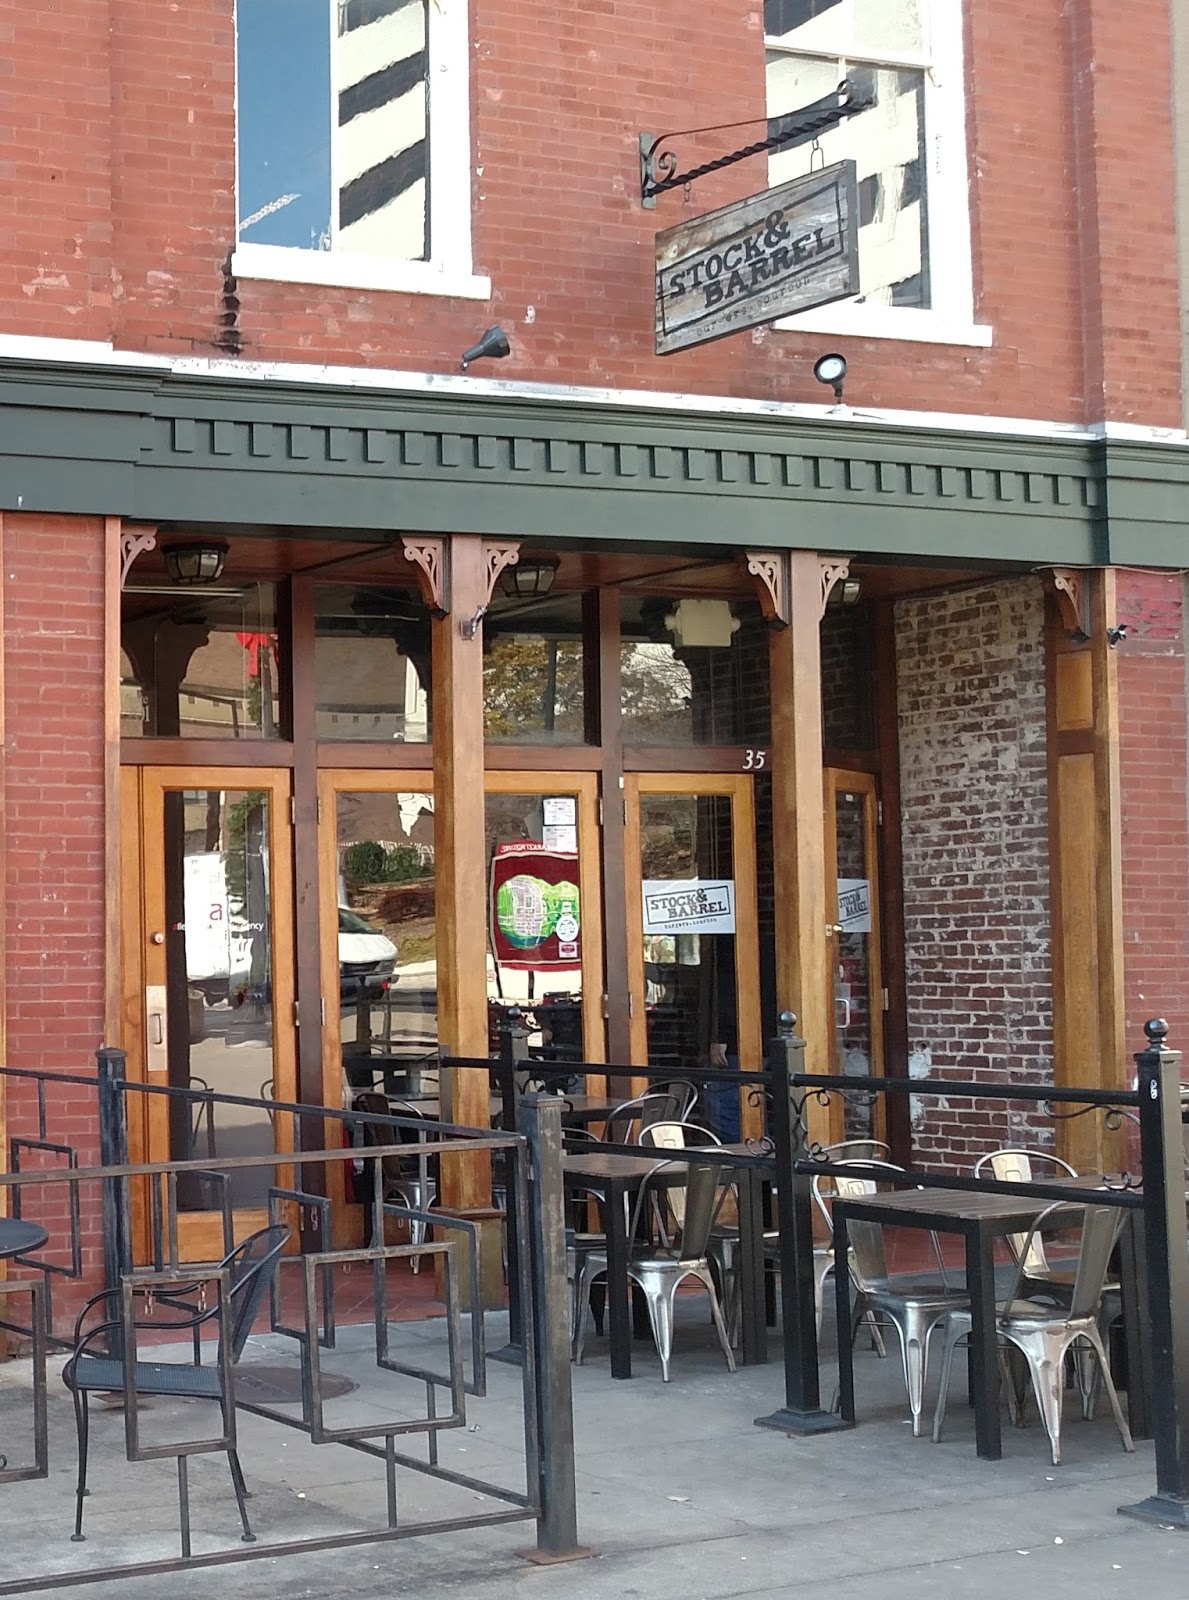 Stock Barrel Is A New Restaurant Which Opened Up In 2017 And Has Taken Knoxville By Storm It Specializes Burgers Bourbons An Amazing